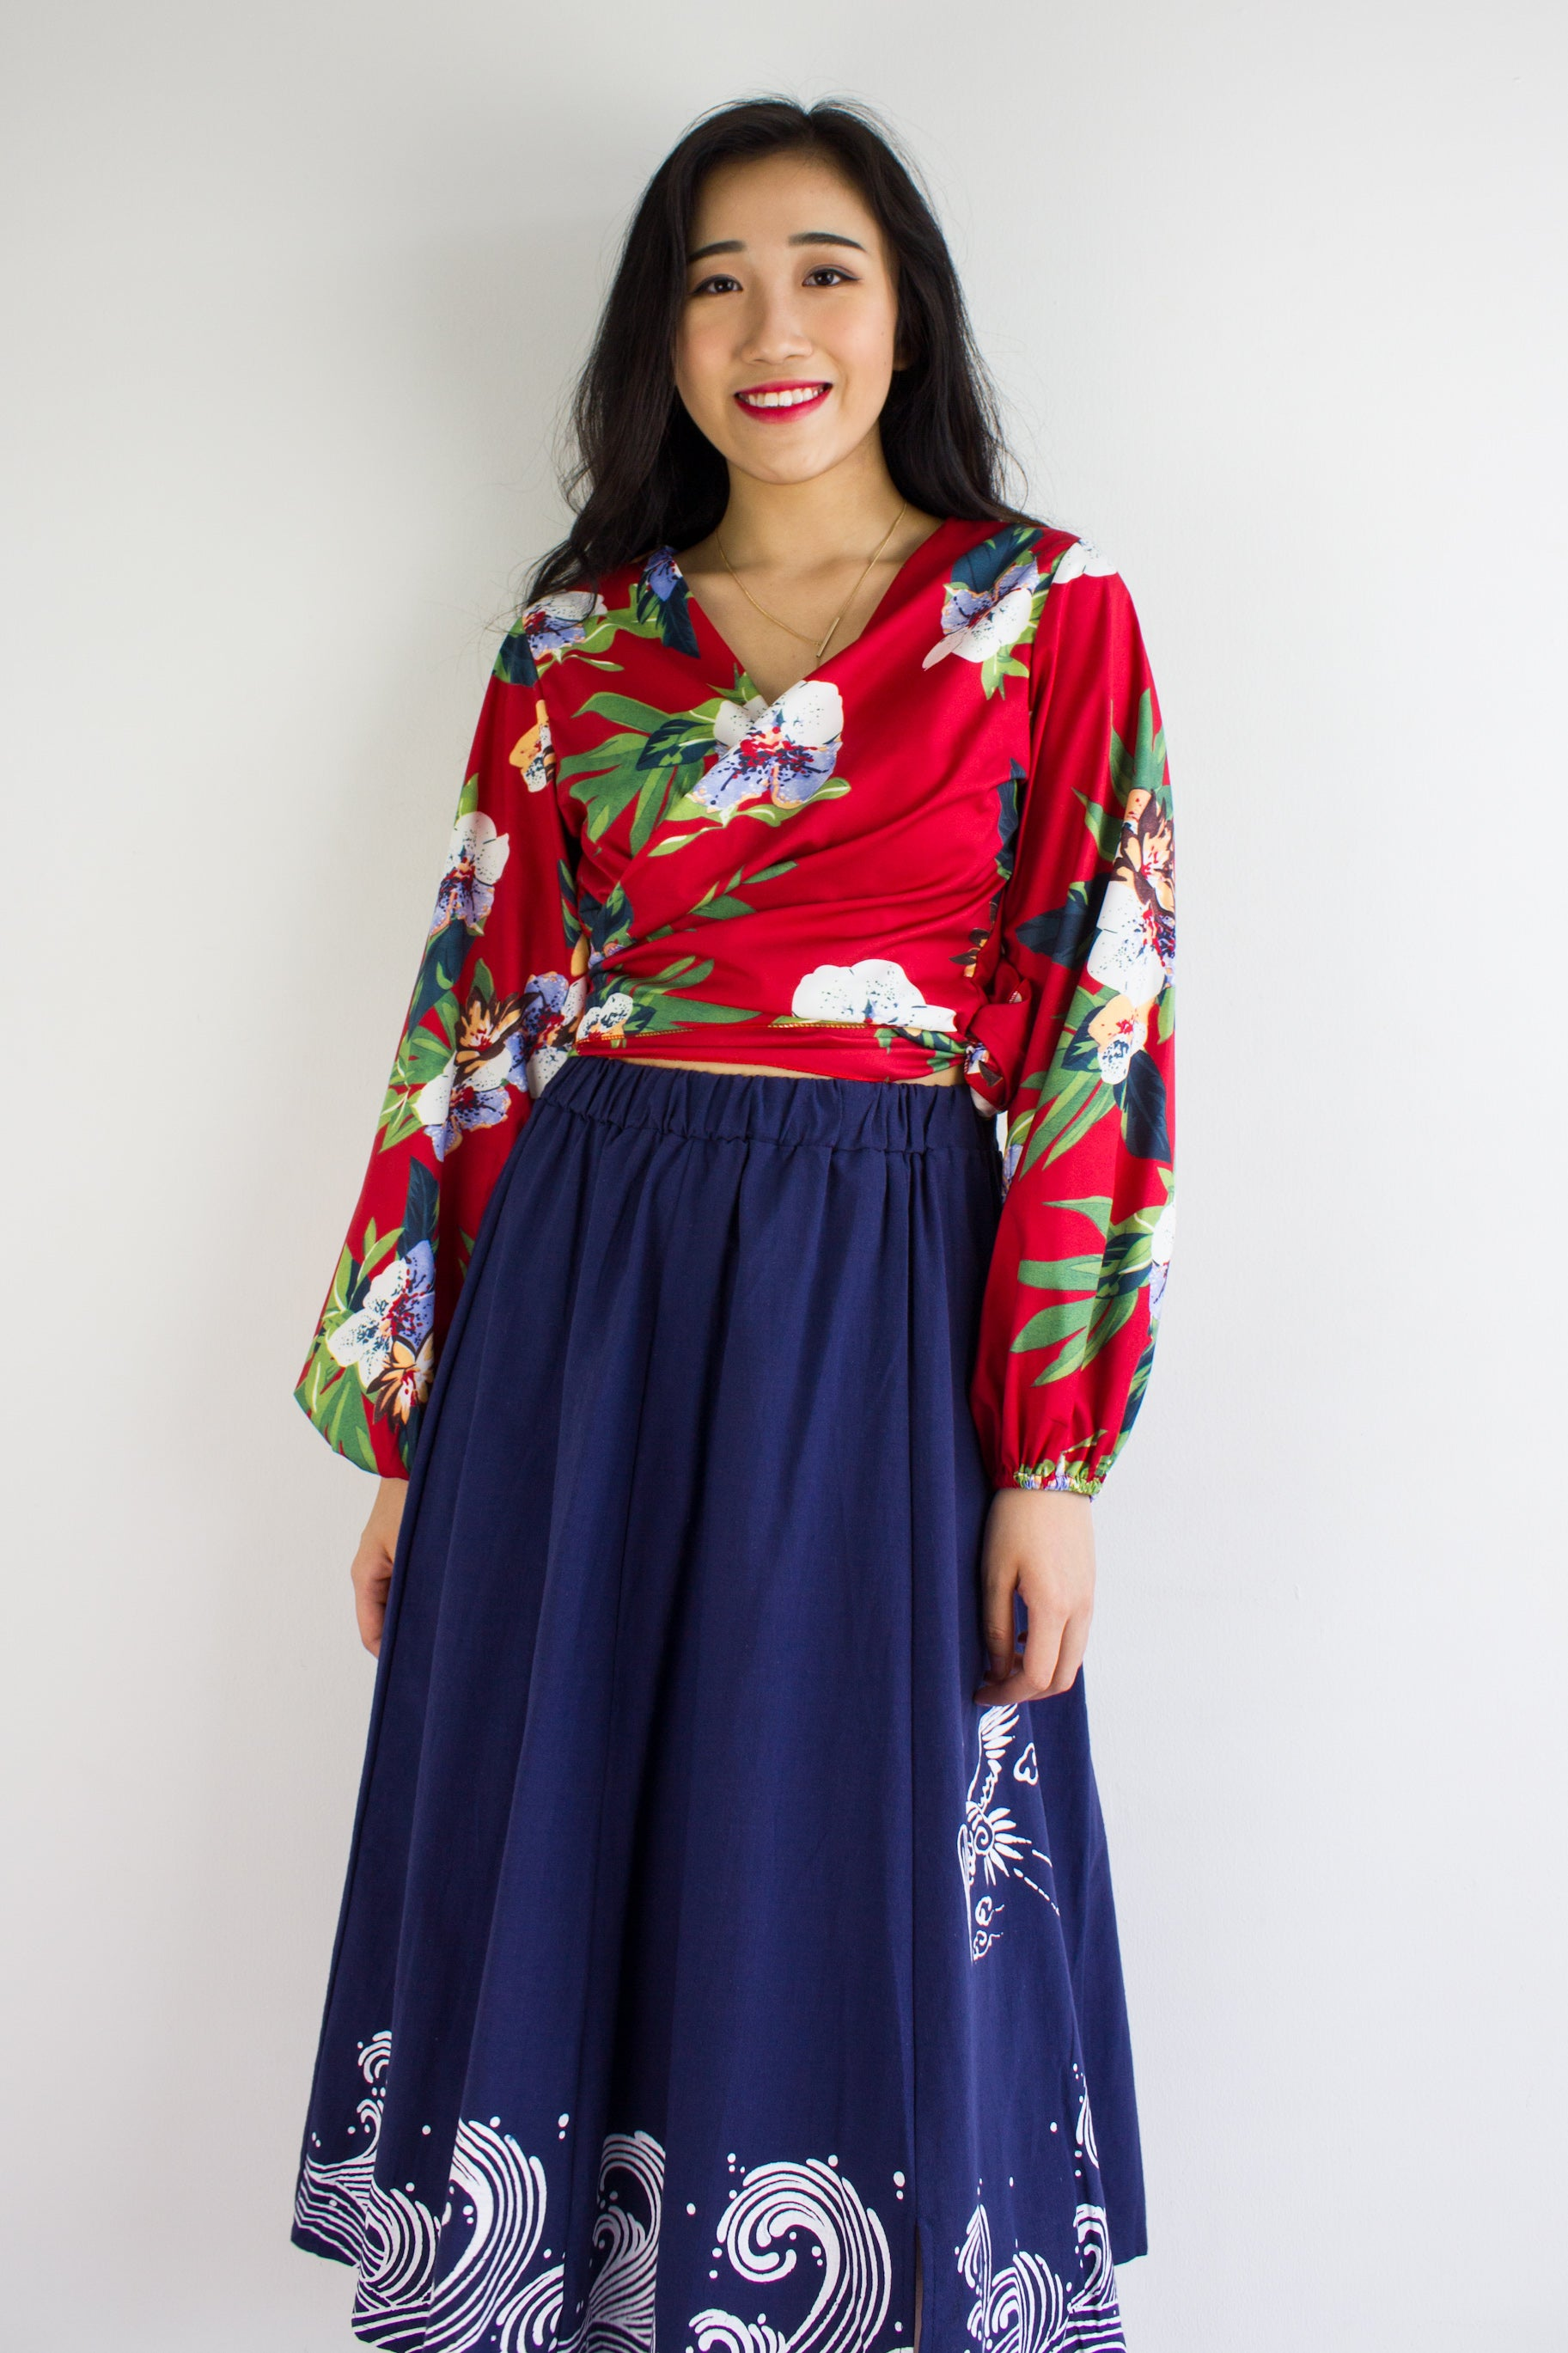 Garden Party Wrap Top in Hibiscus on Red